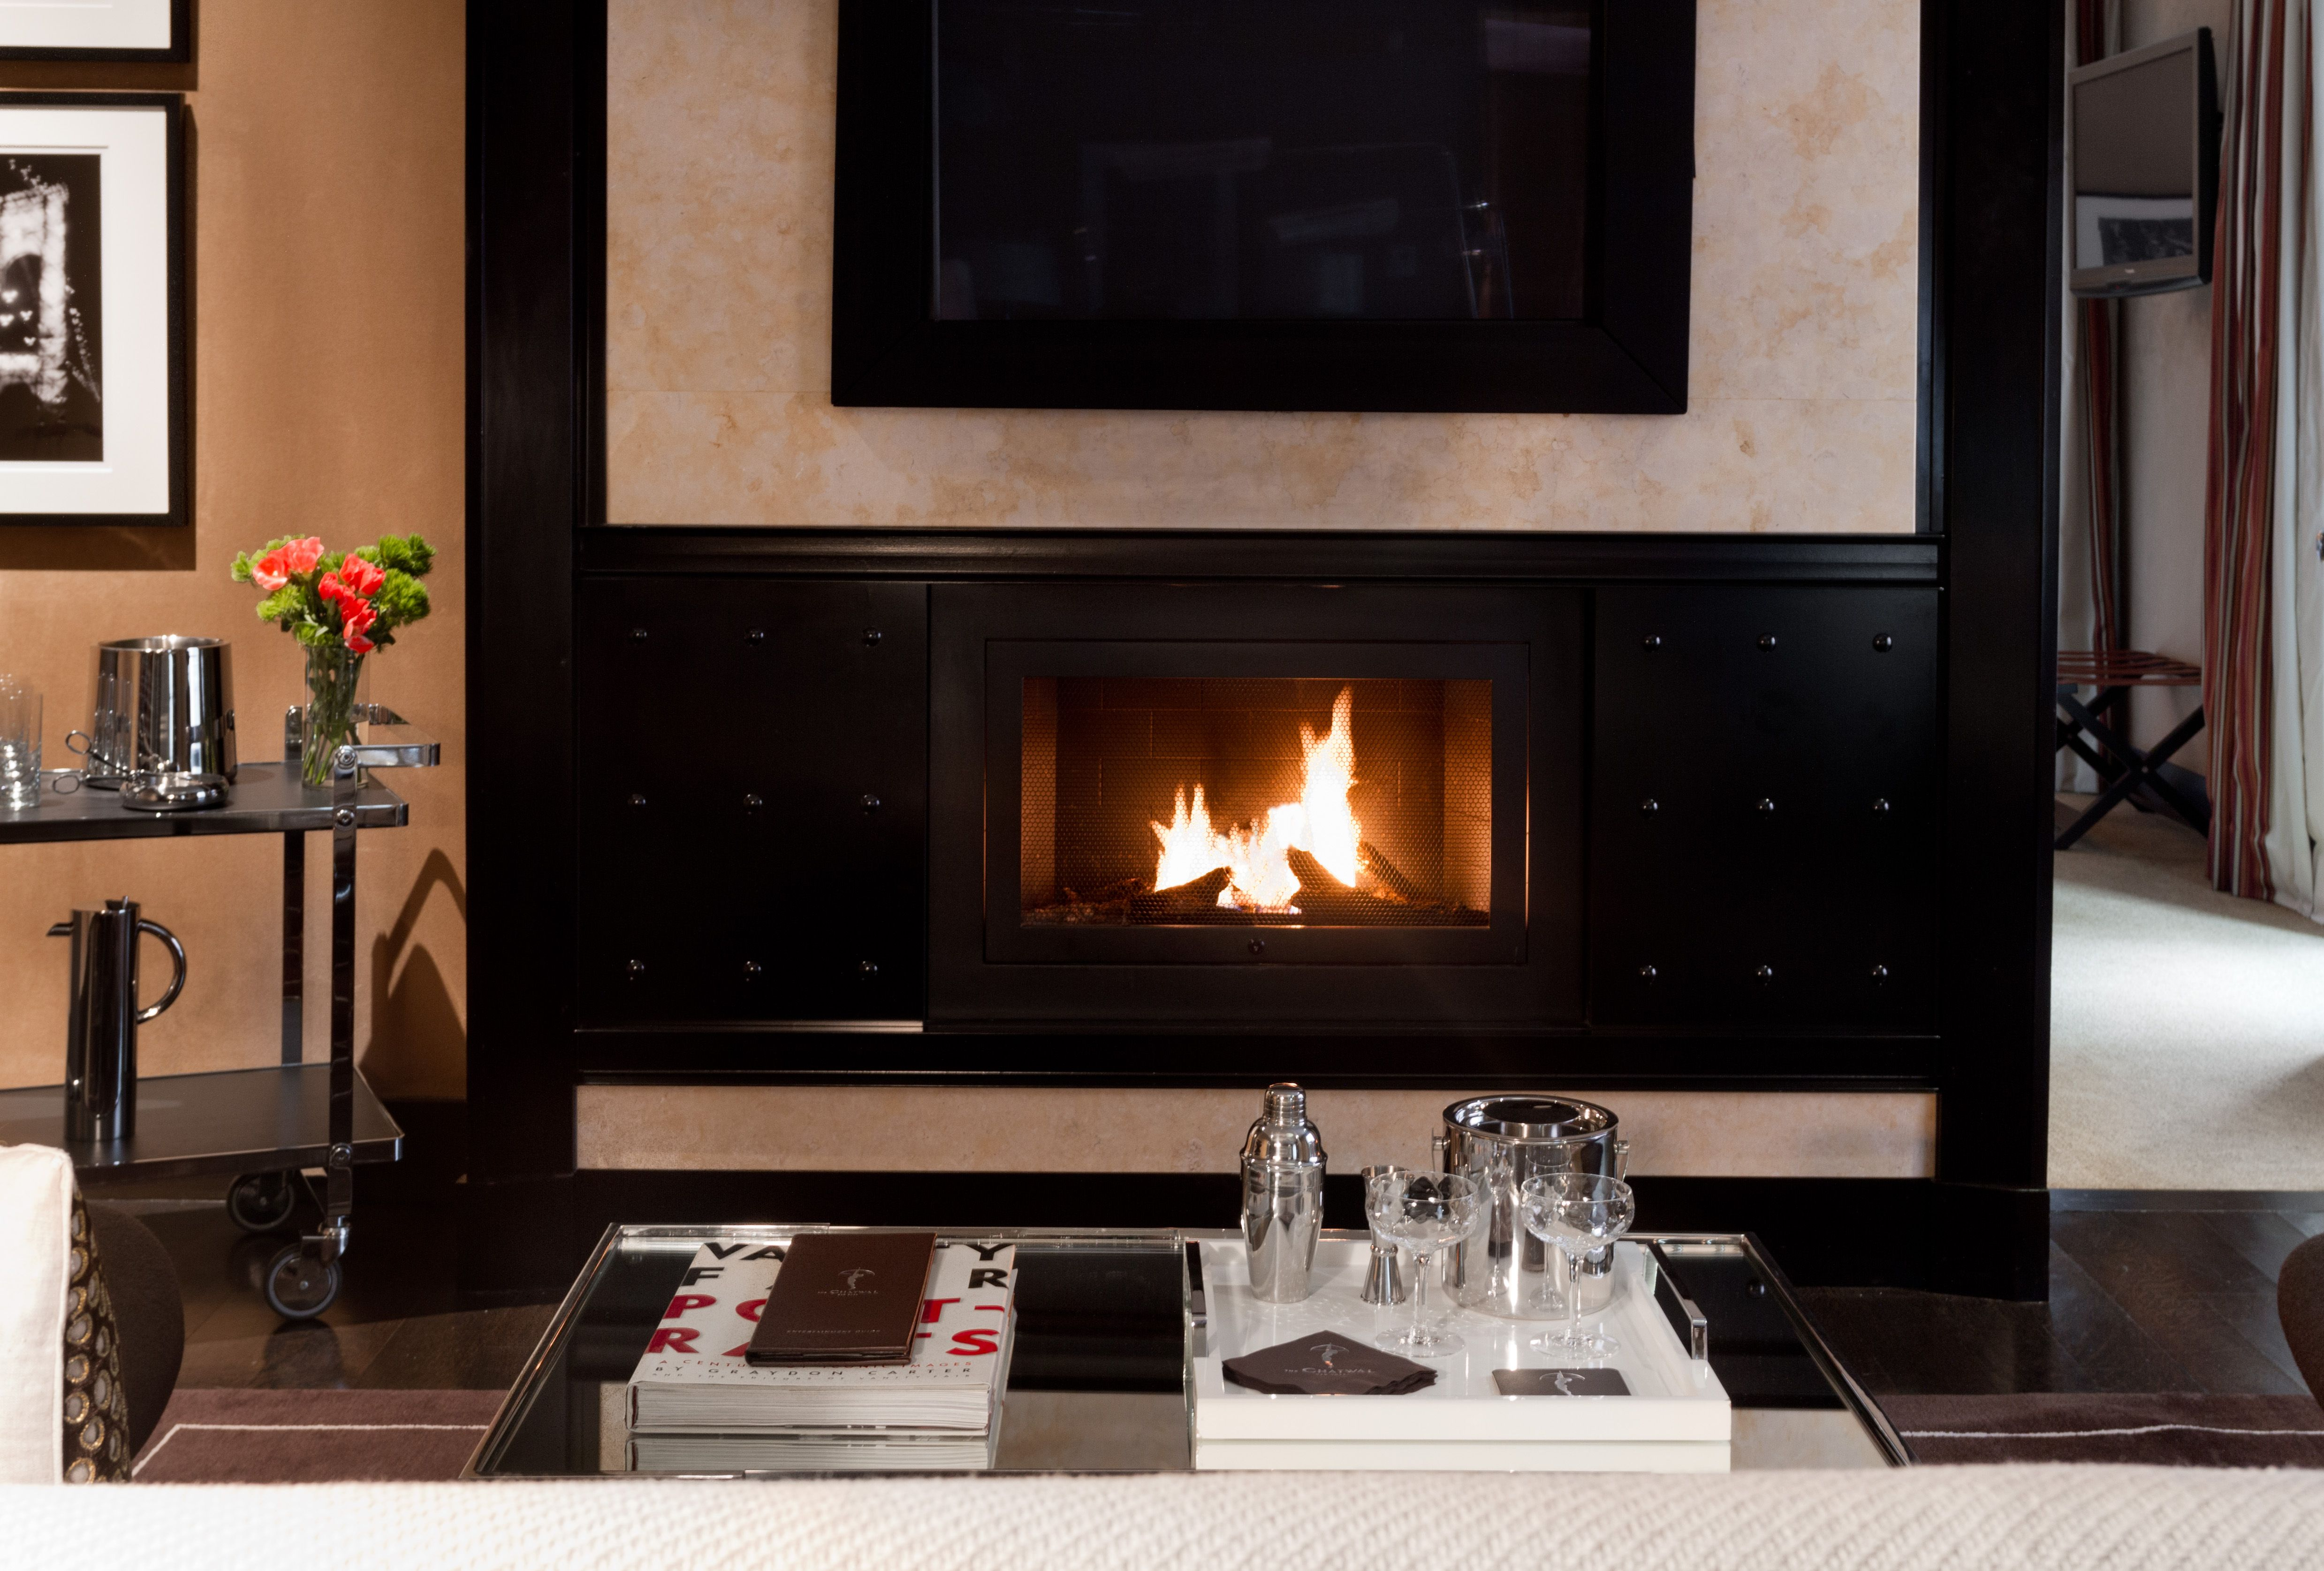 A Fireplace A Bar Cart And Cozy Seating The Suite In This